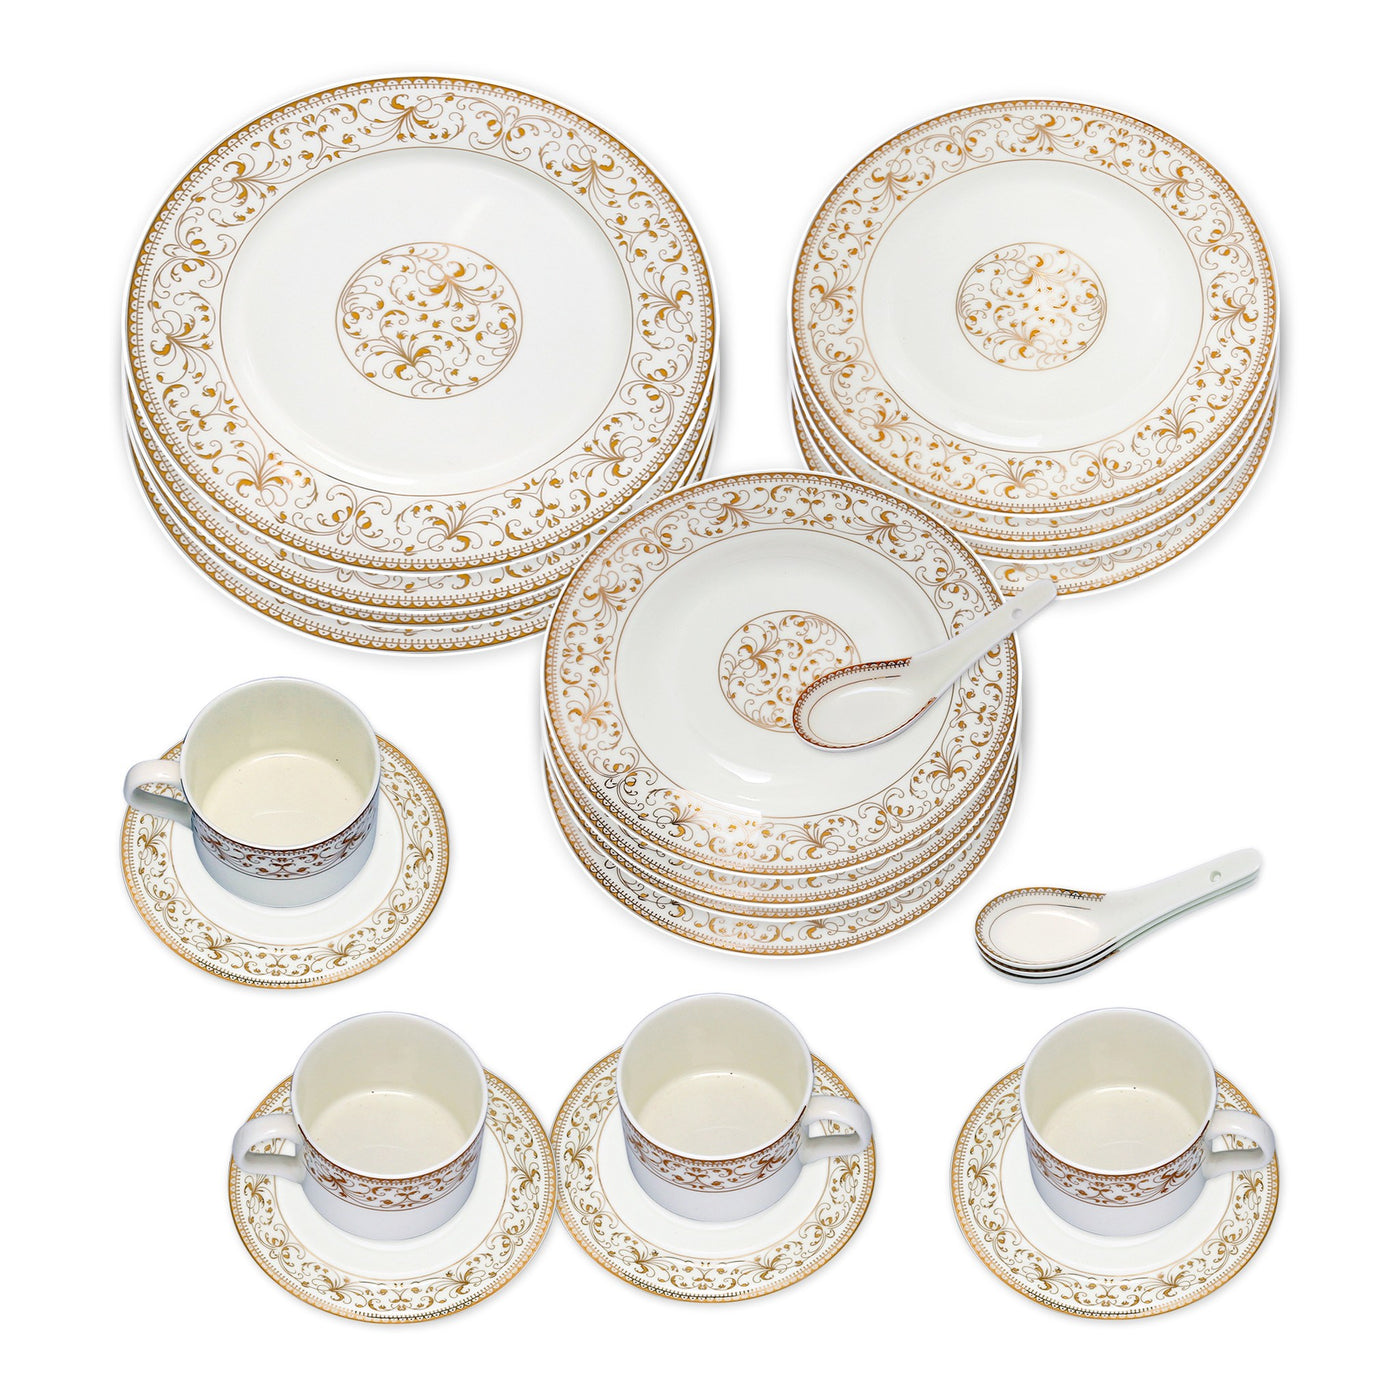 ... Dinnerwares - Bone China 24 Piece Dinnerware Set Yellow Leaves And Gold Twigs Service For ...  sc 1 st  Homenique.net & Fine Bone China Dinnerware Set - 24 Piece Service for 4 - Gold Leaf ...